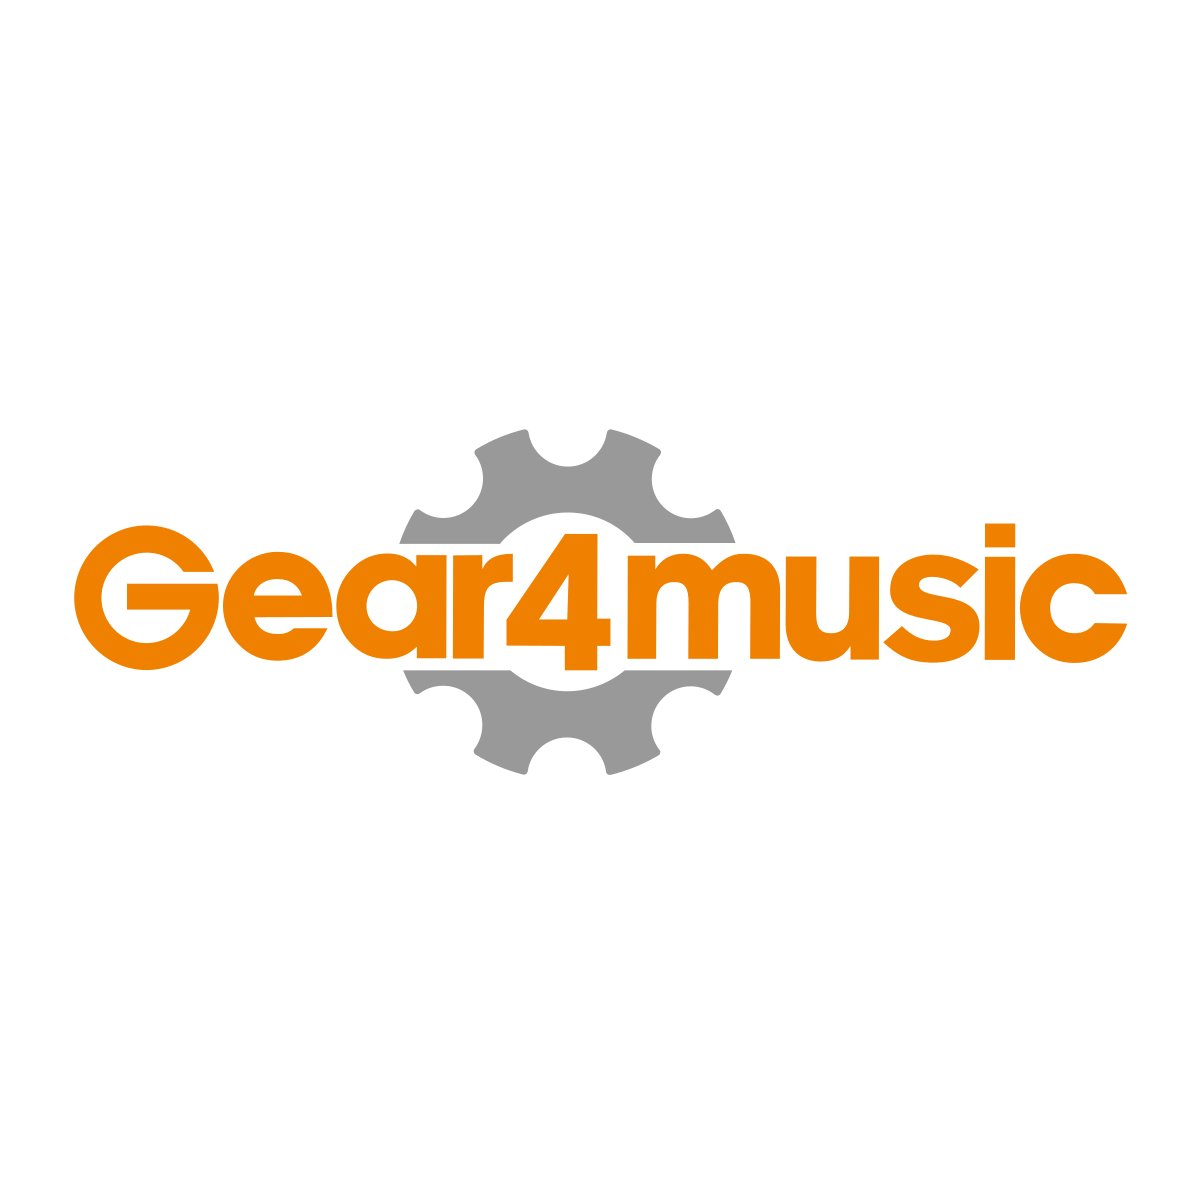 Melófono de Gear4music